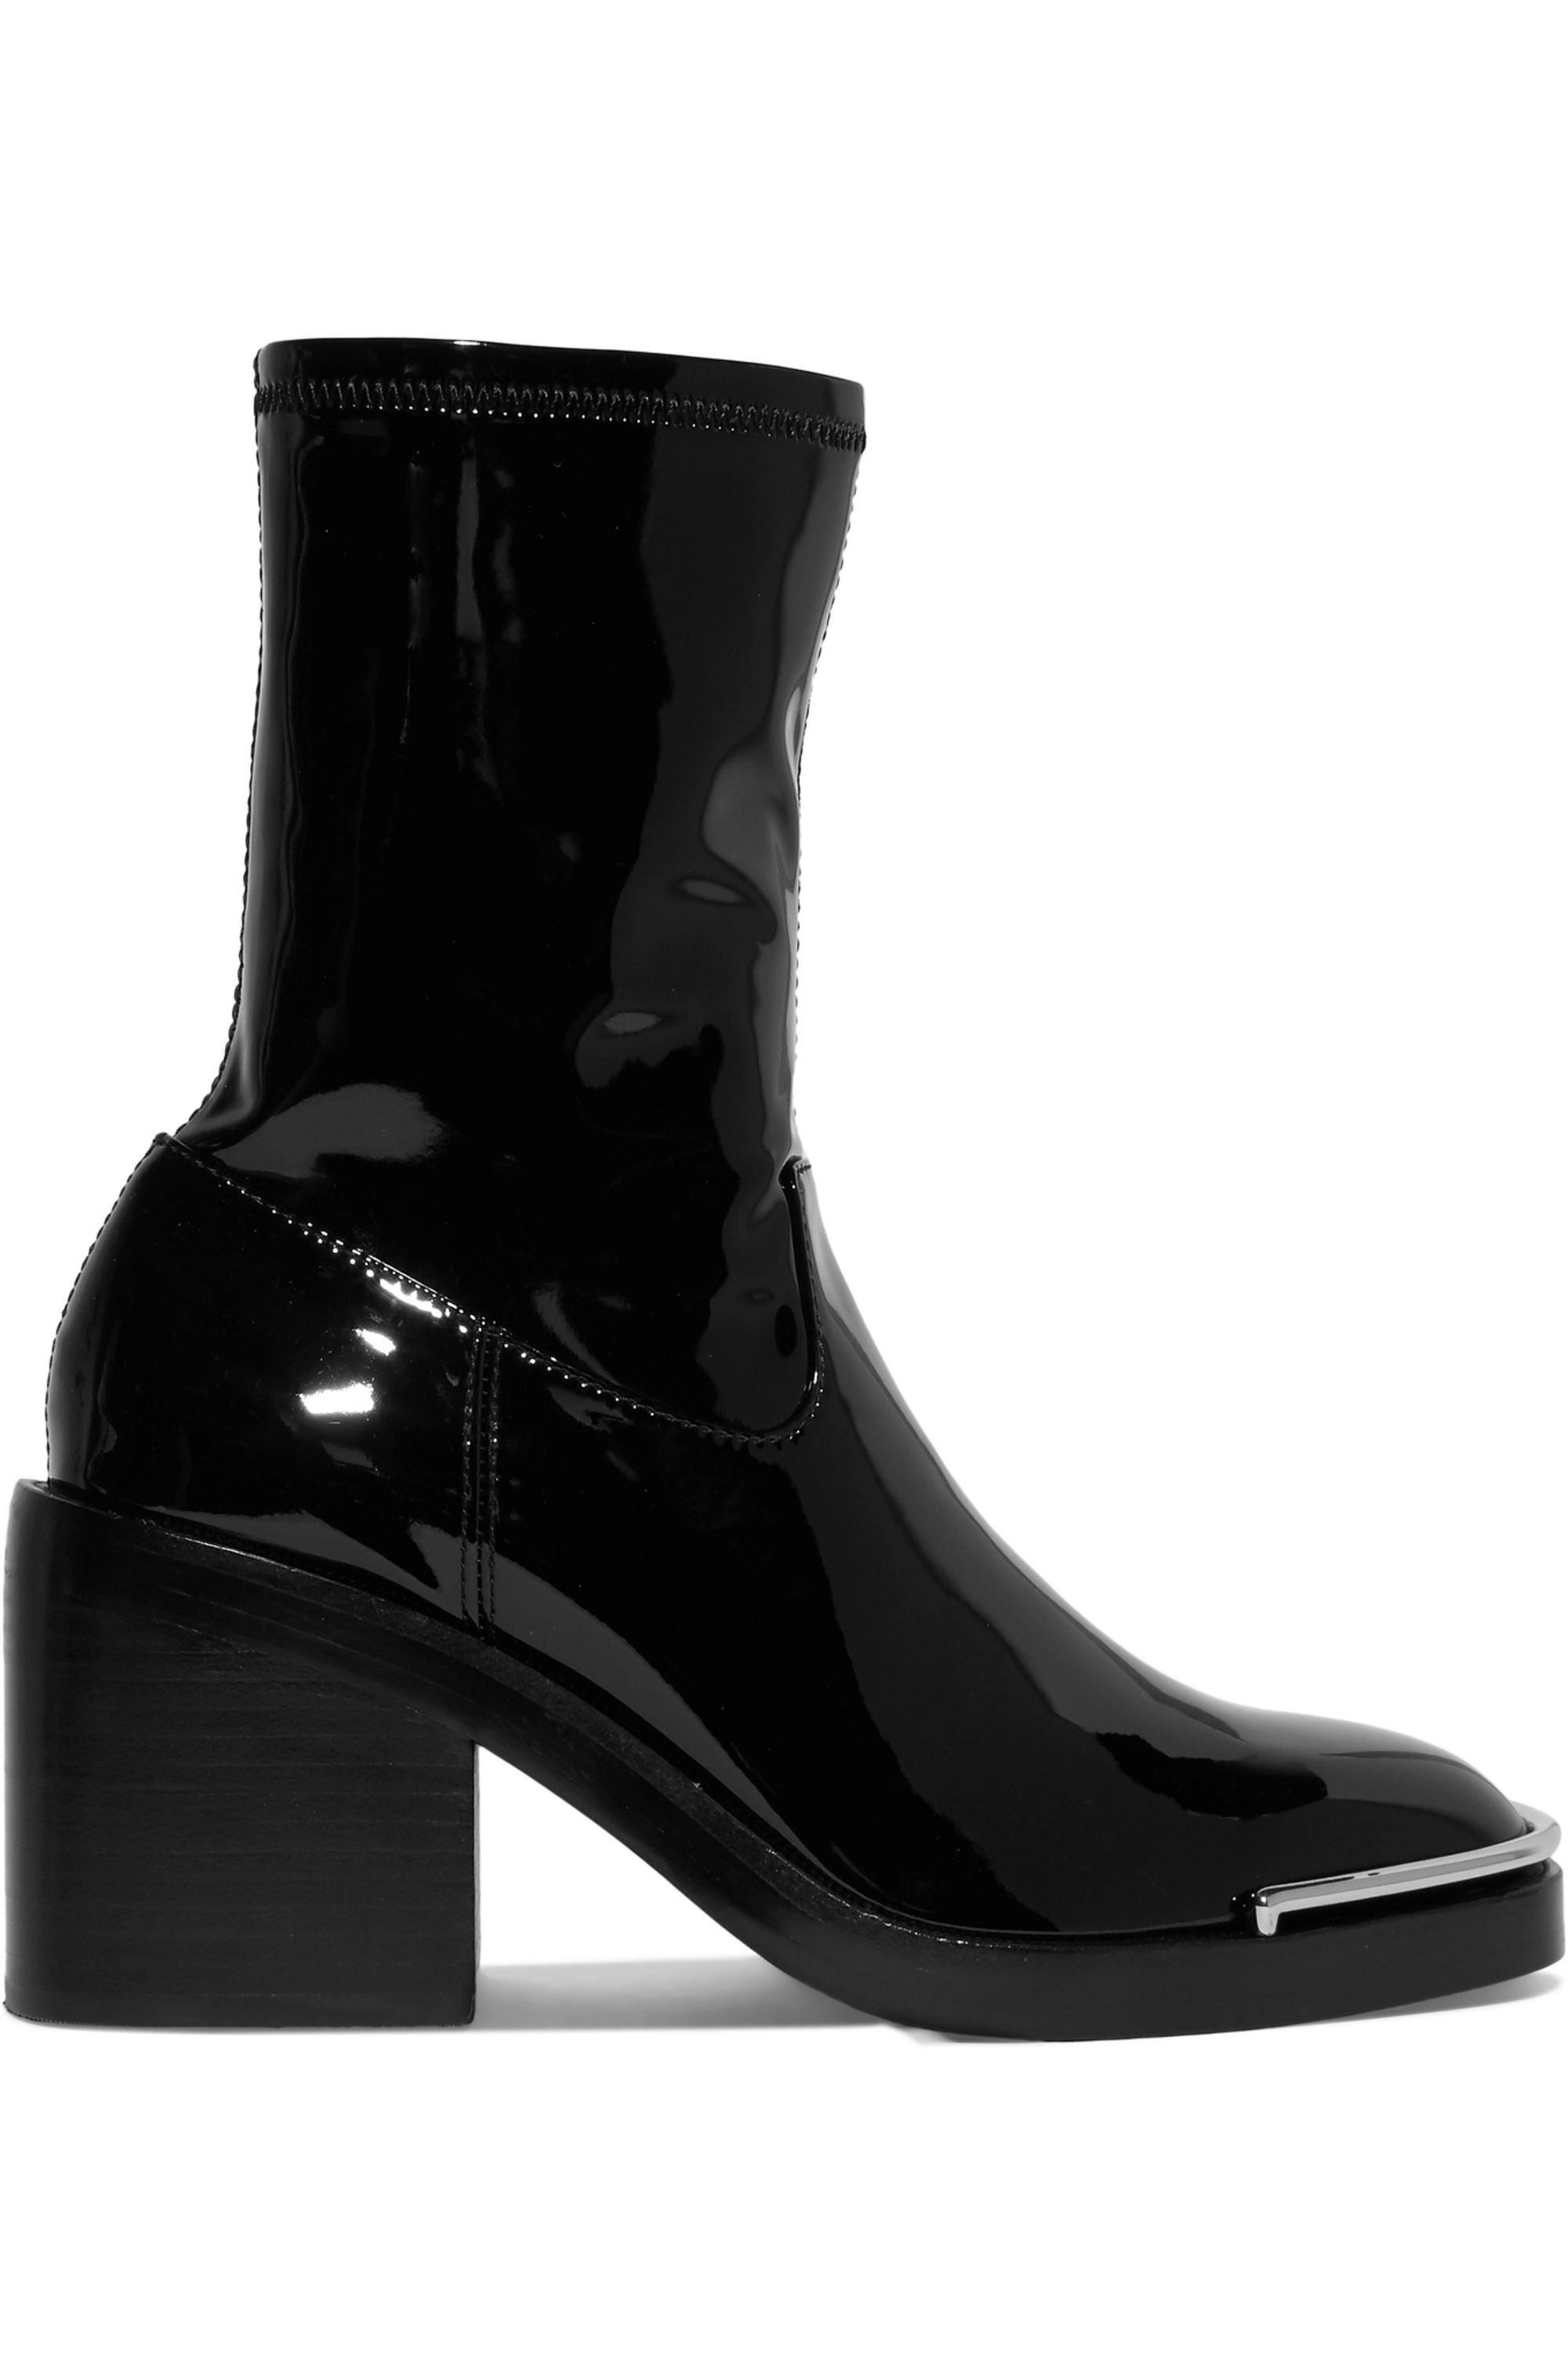 Black Hailey metal-trimmed PVC ankle